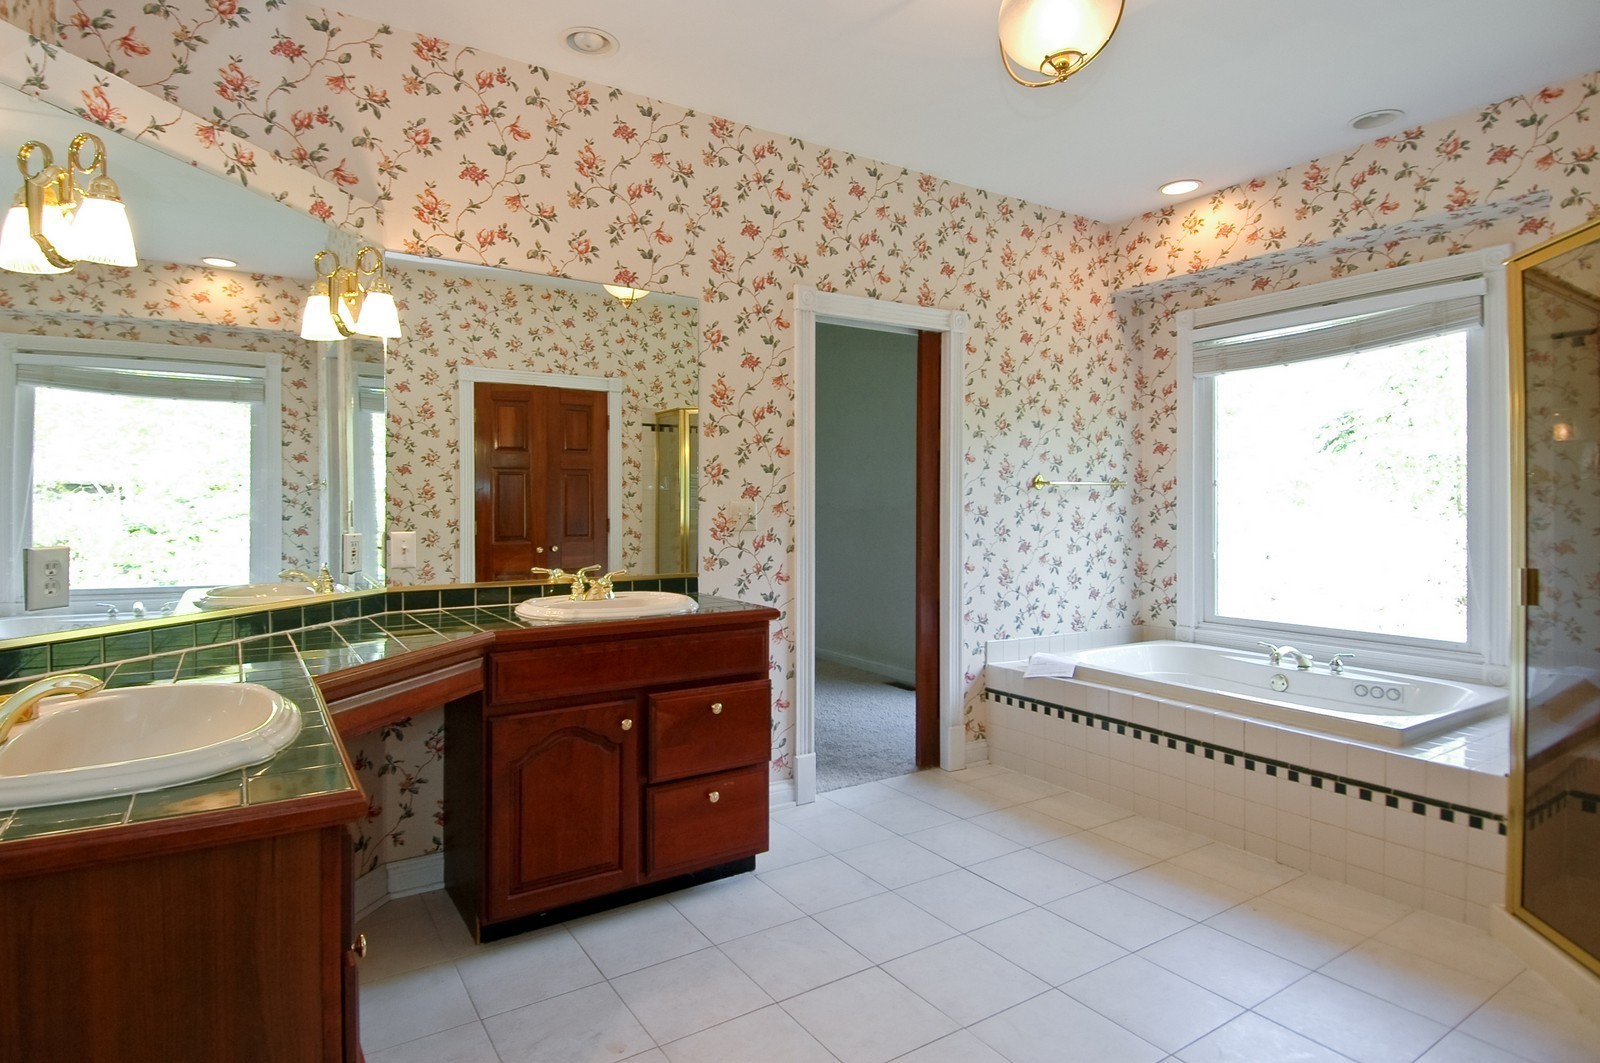 Real Estate Photography - 644 Oakland Dr, Dekalb, IL, 60115 - Master Bathroom